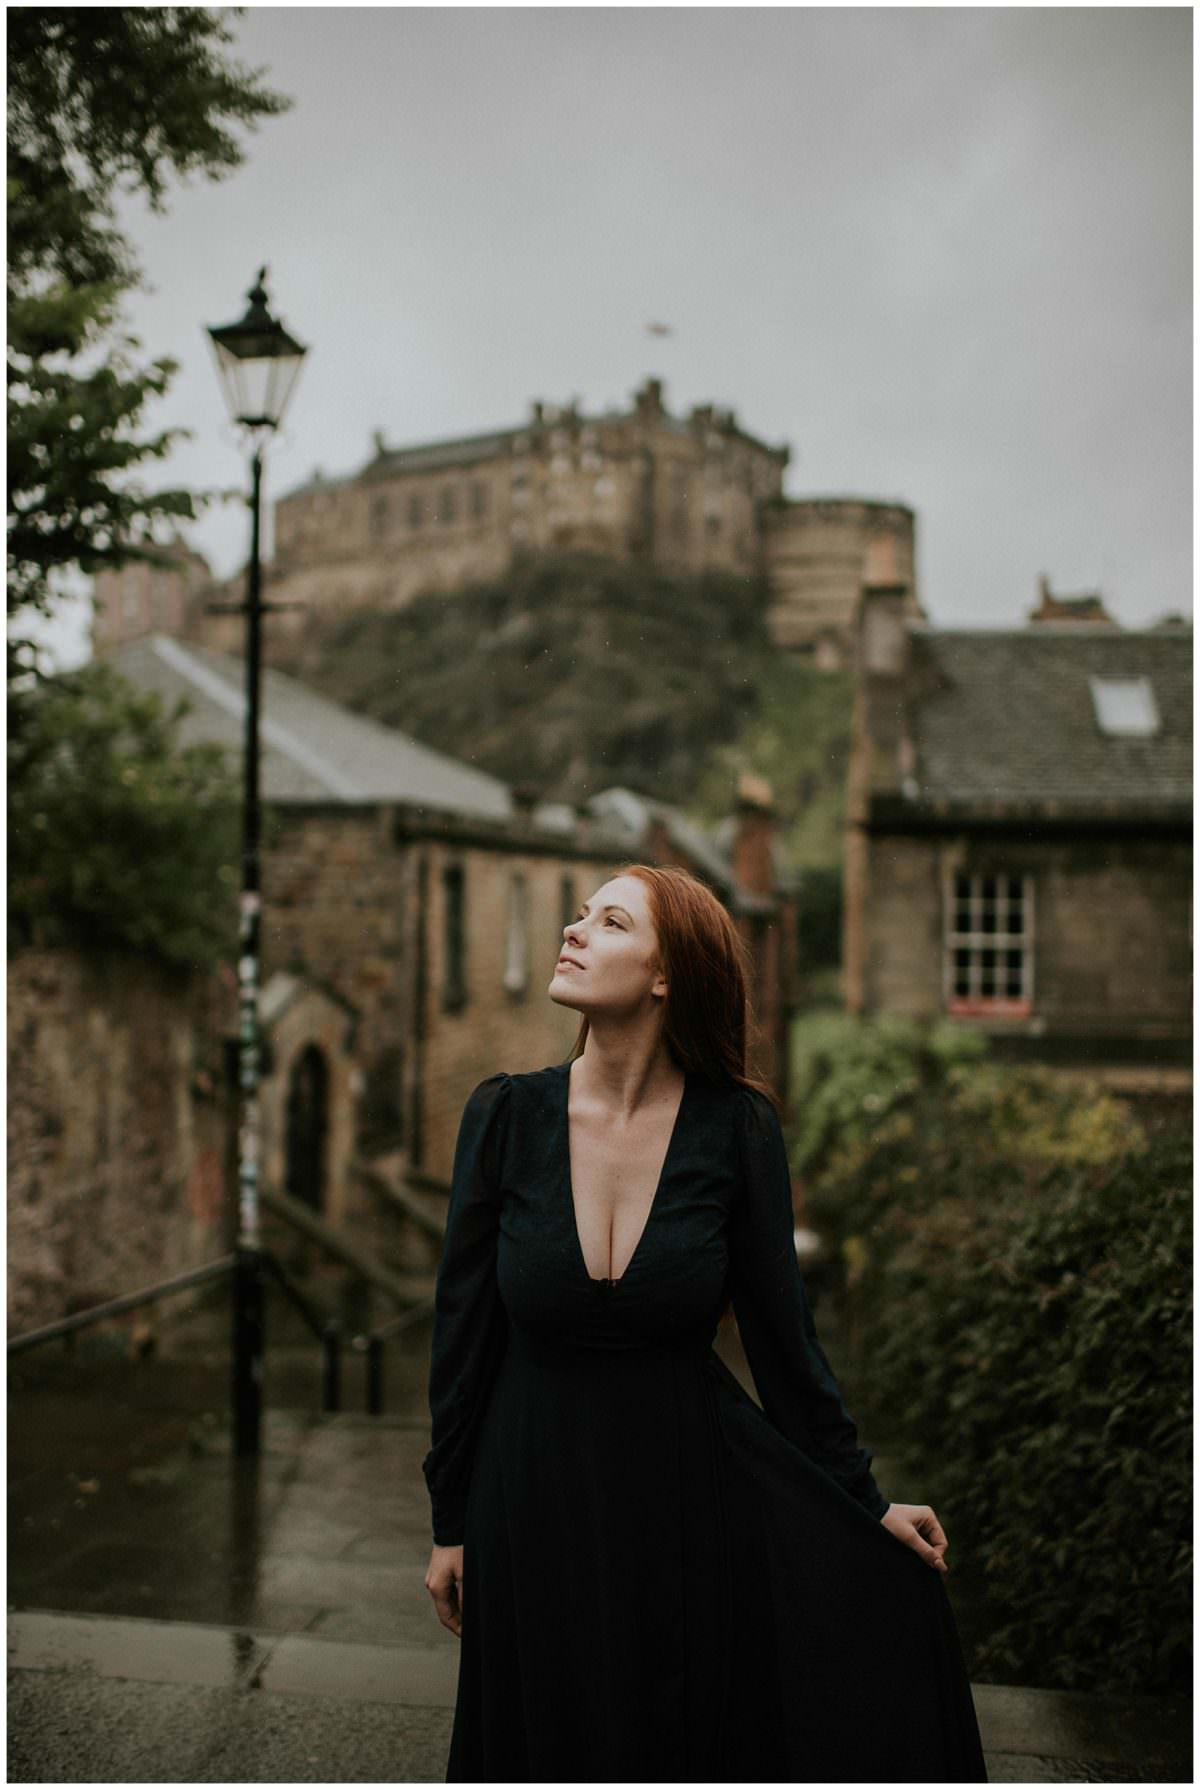 Edinburgh Castle photoshoot - Edinburgh wedding photographer